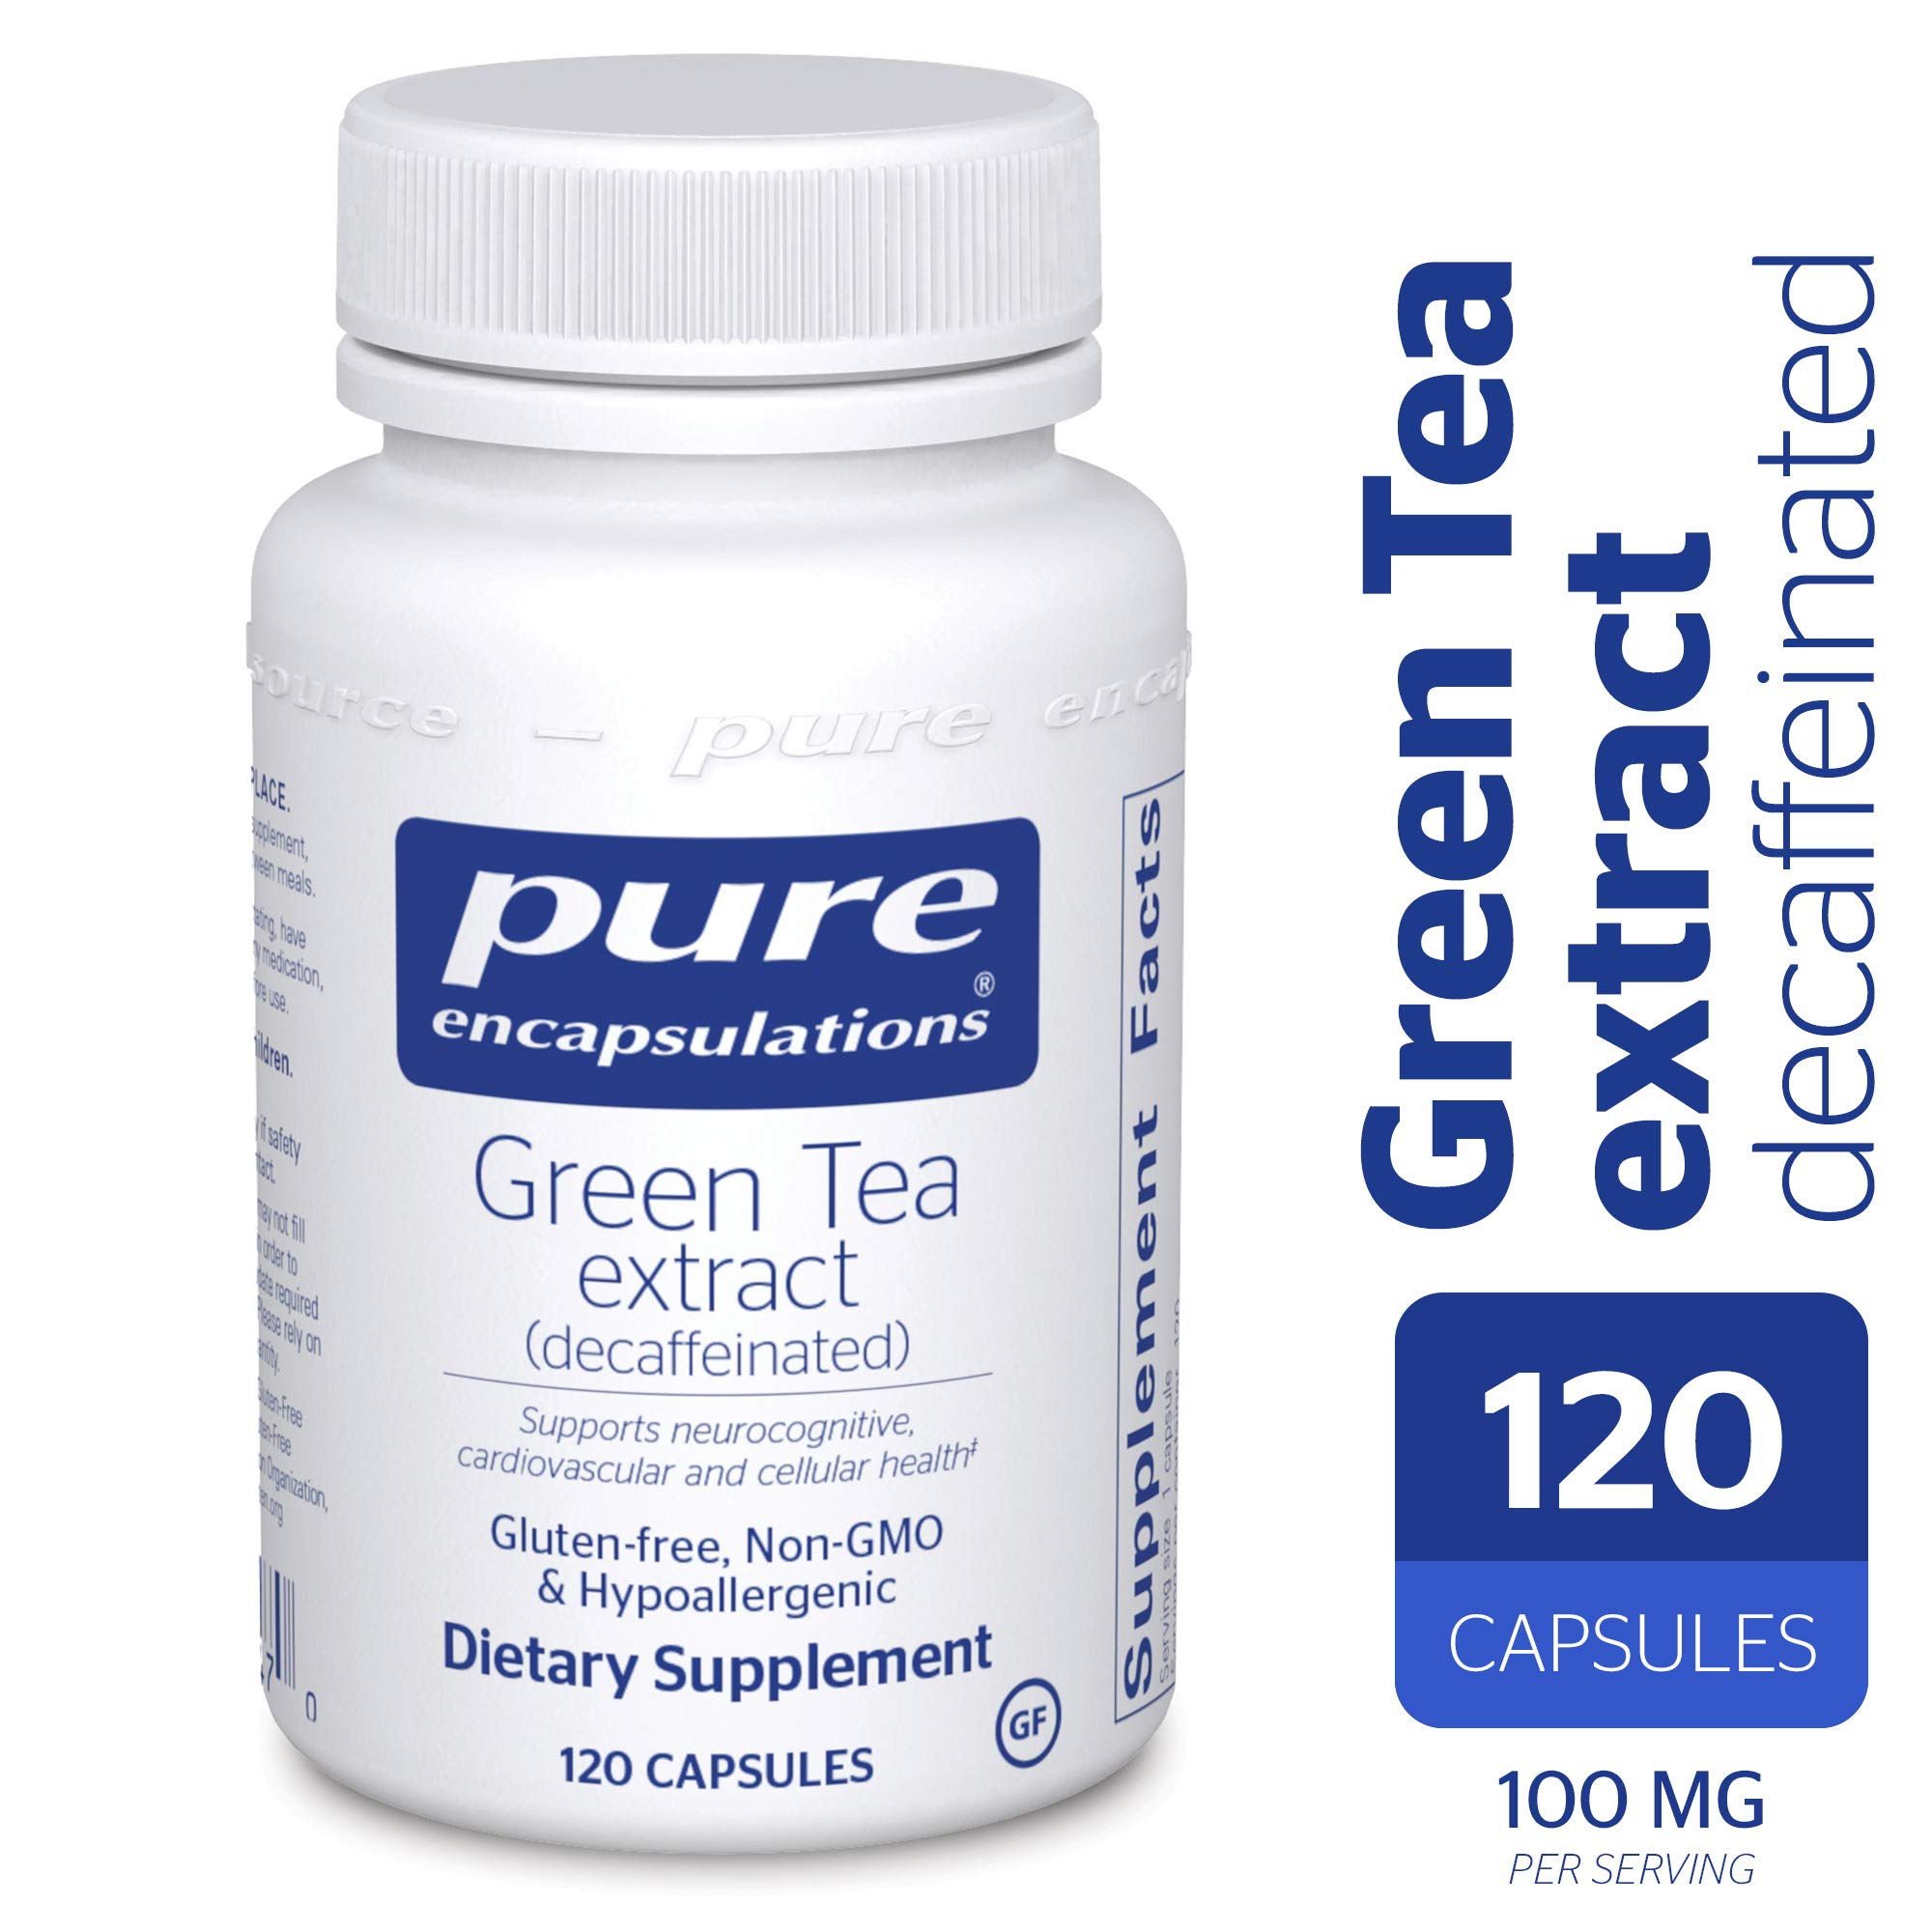 Pure Encapsulations - Green Tea Extract - Decaffeinated - Hypoallergenic Antioxidant Support for All Cells in The Body* - 120 Capsules by Pure Encapsulations